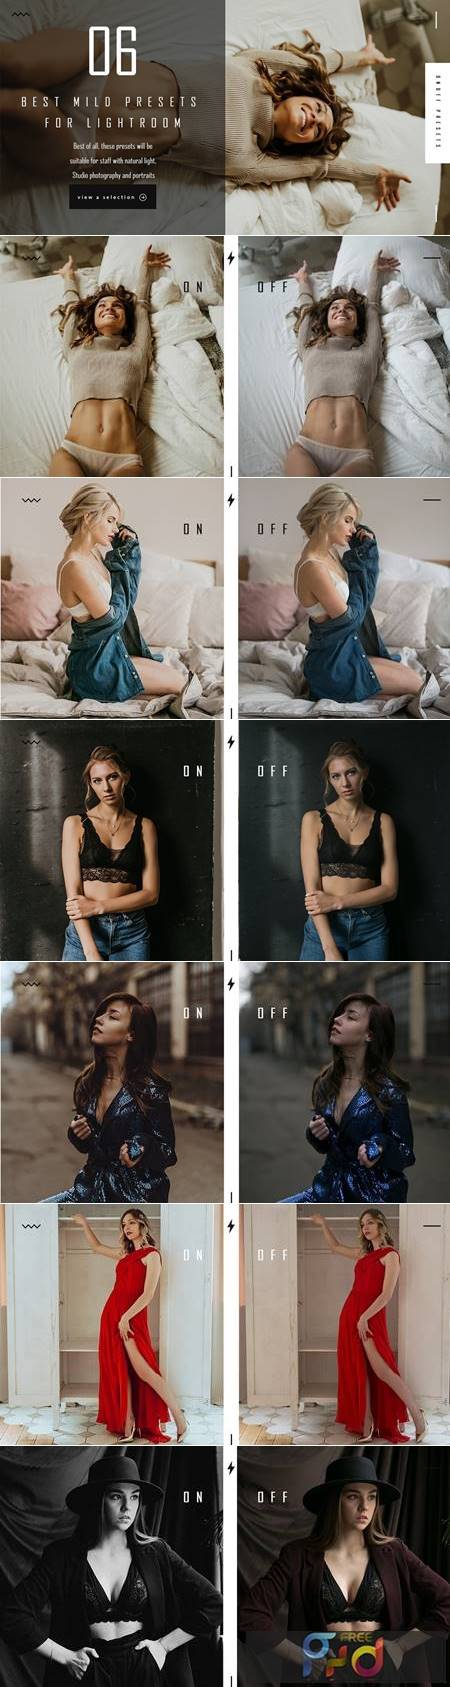 06 best mild presets for Lightroom 4992144 1